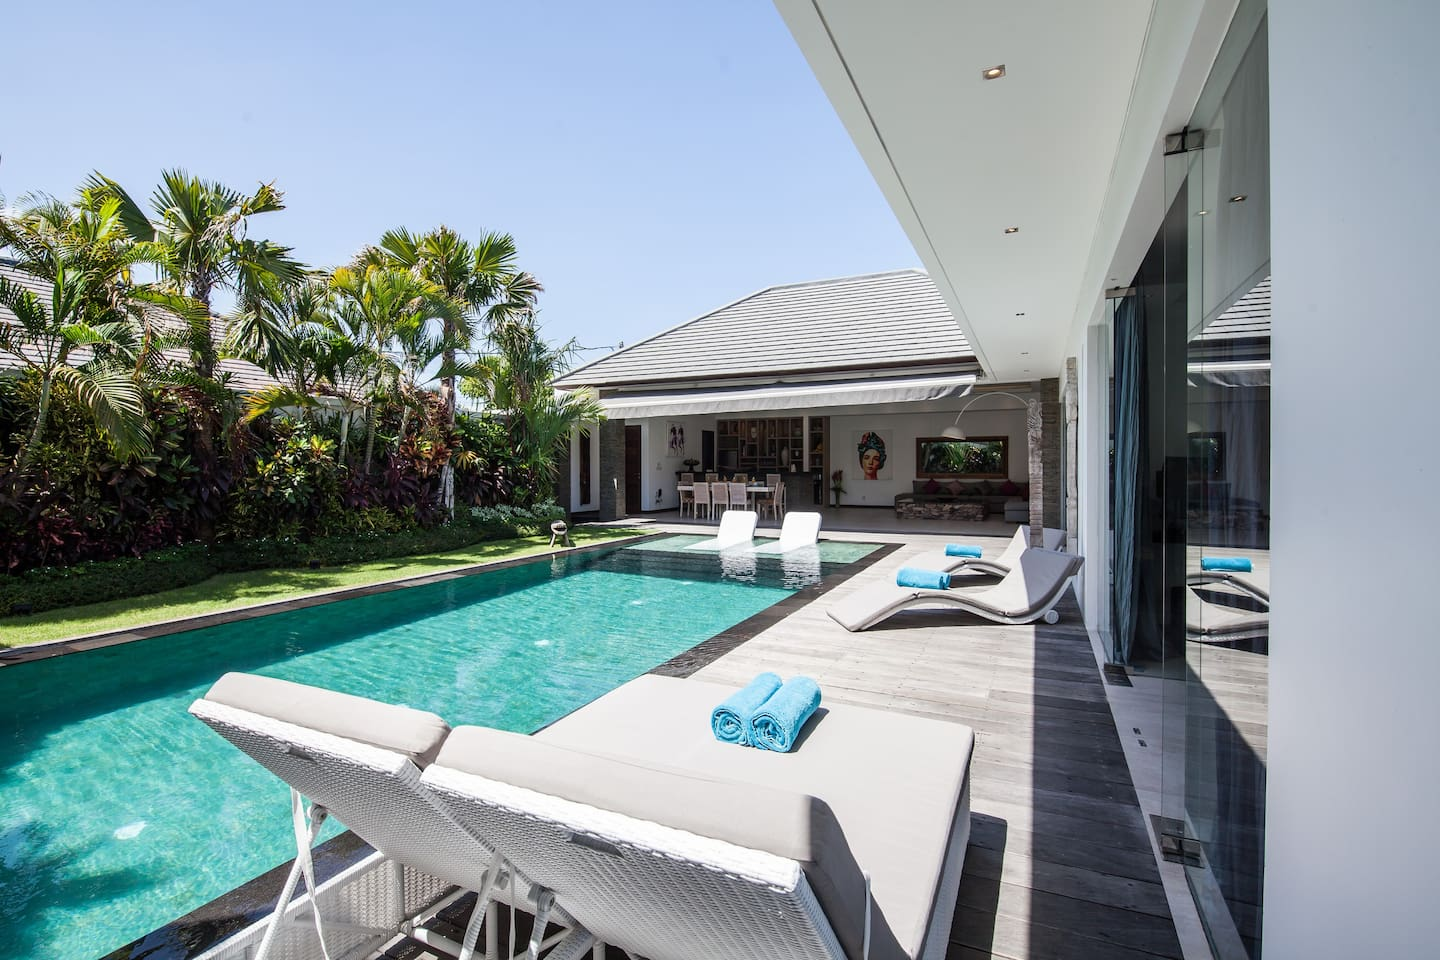 Meuble Salle De Bain Bath And Kitchen ~ Villa 3 Chbr Quartier Calme 5 Mns De Seminyak Villas For Rent In